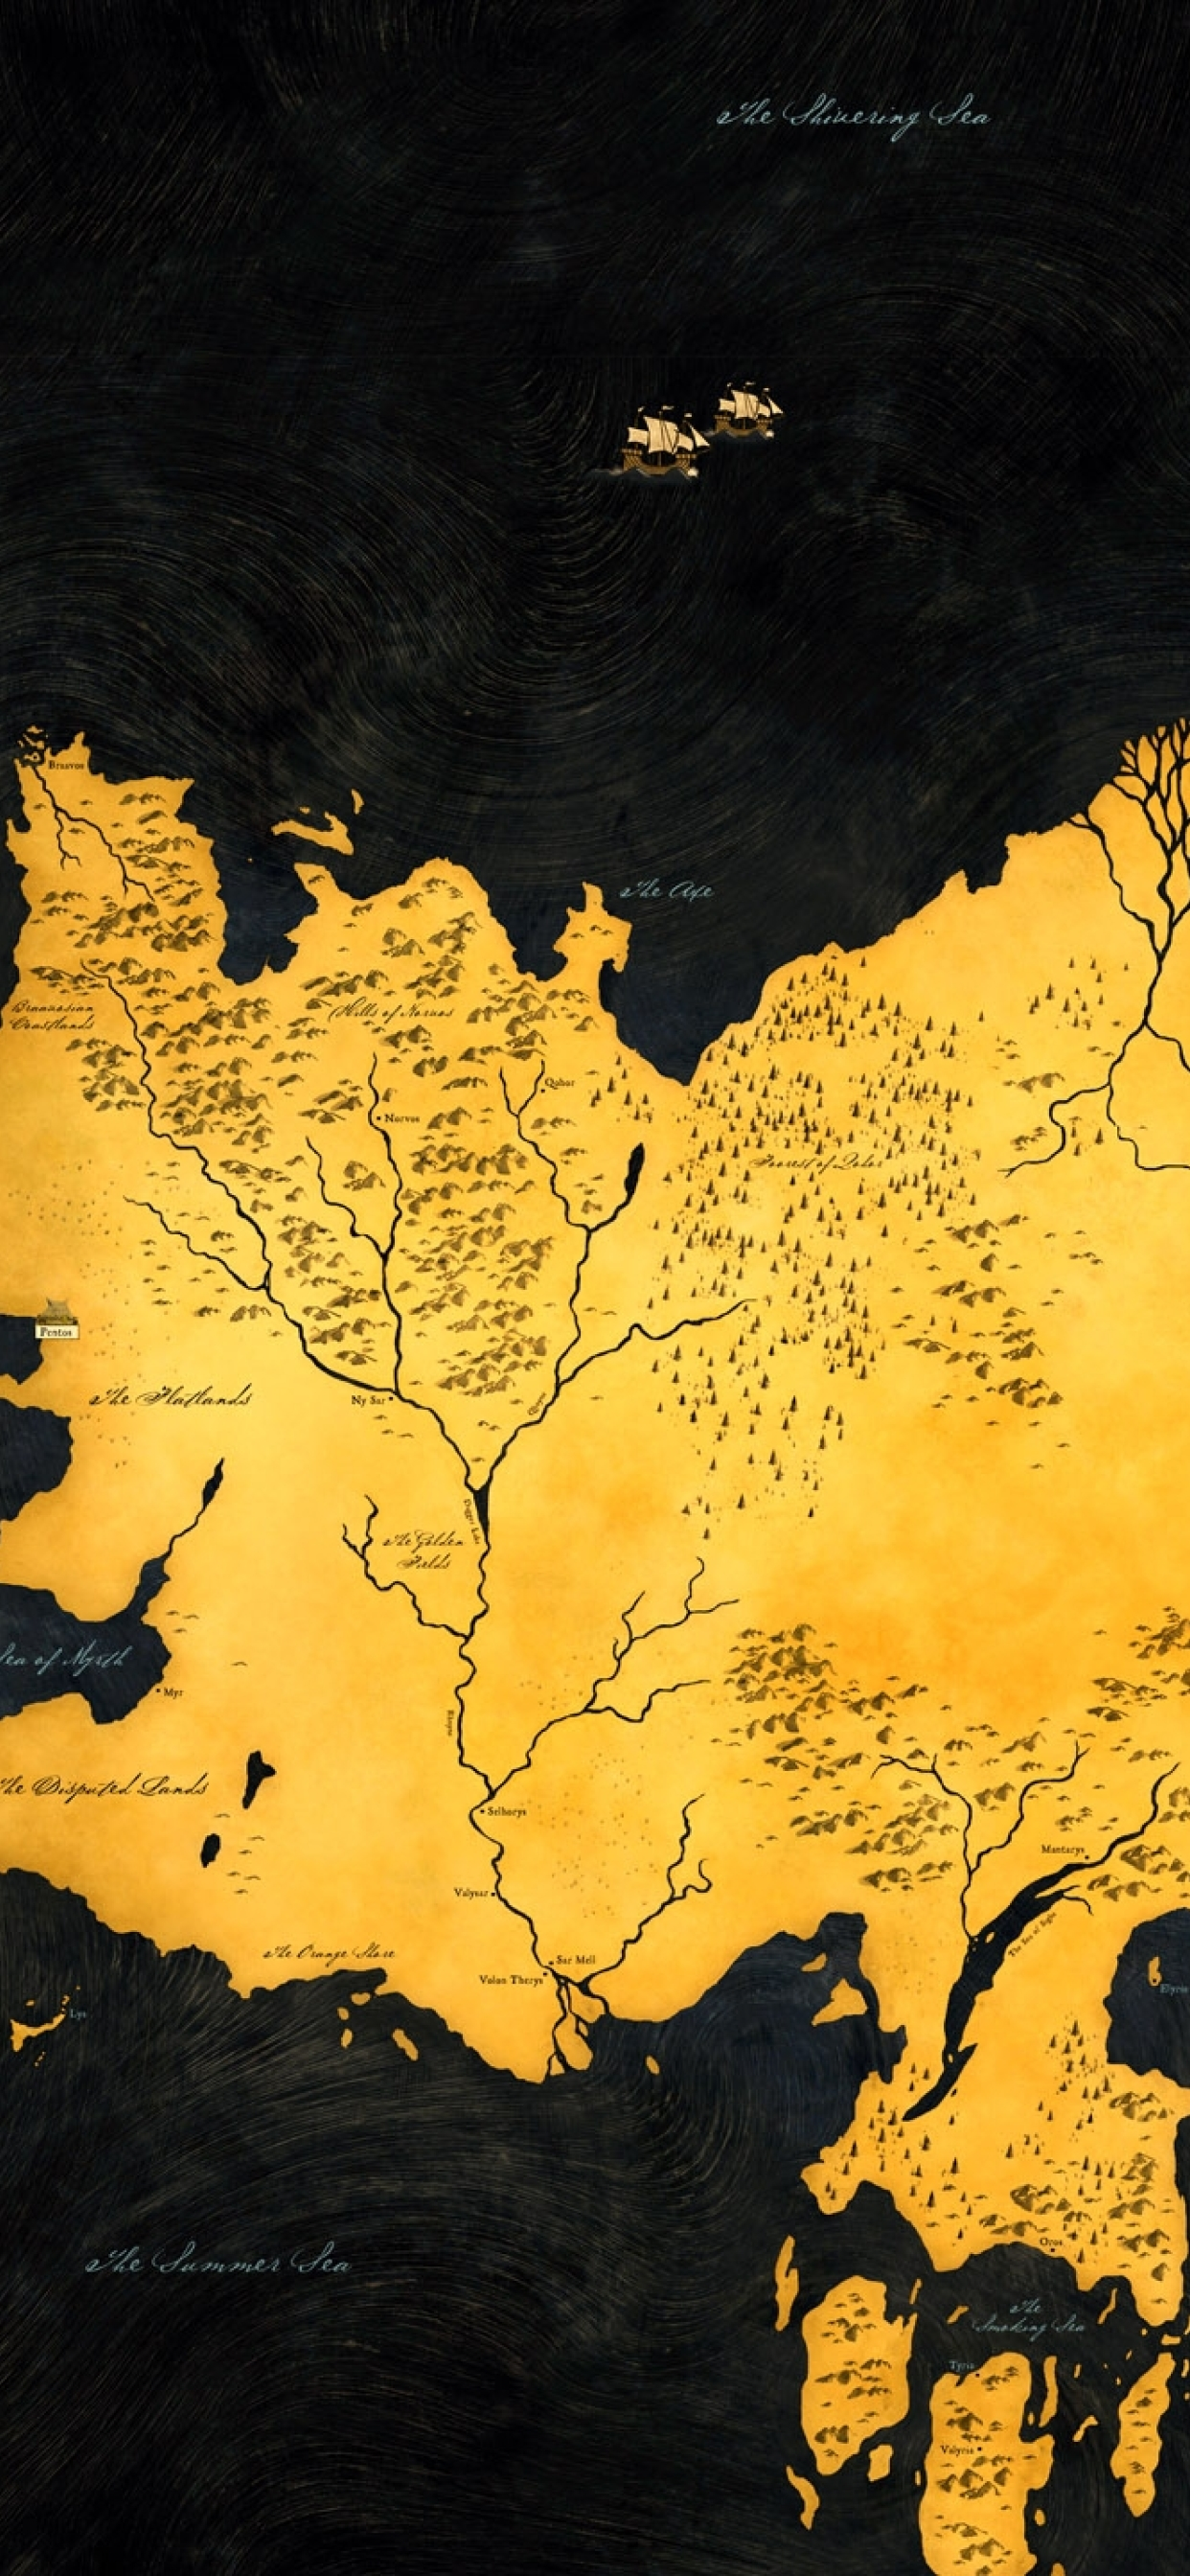 1242x2688 Game Of Thrones Map Hd Wallpaper Iphone Xs Max Wallpaper